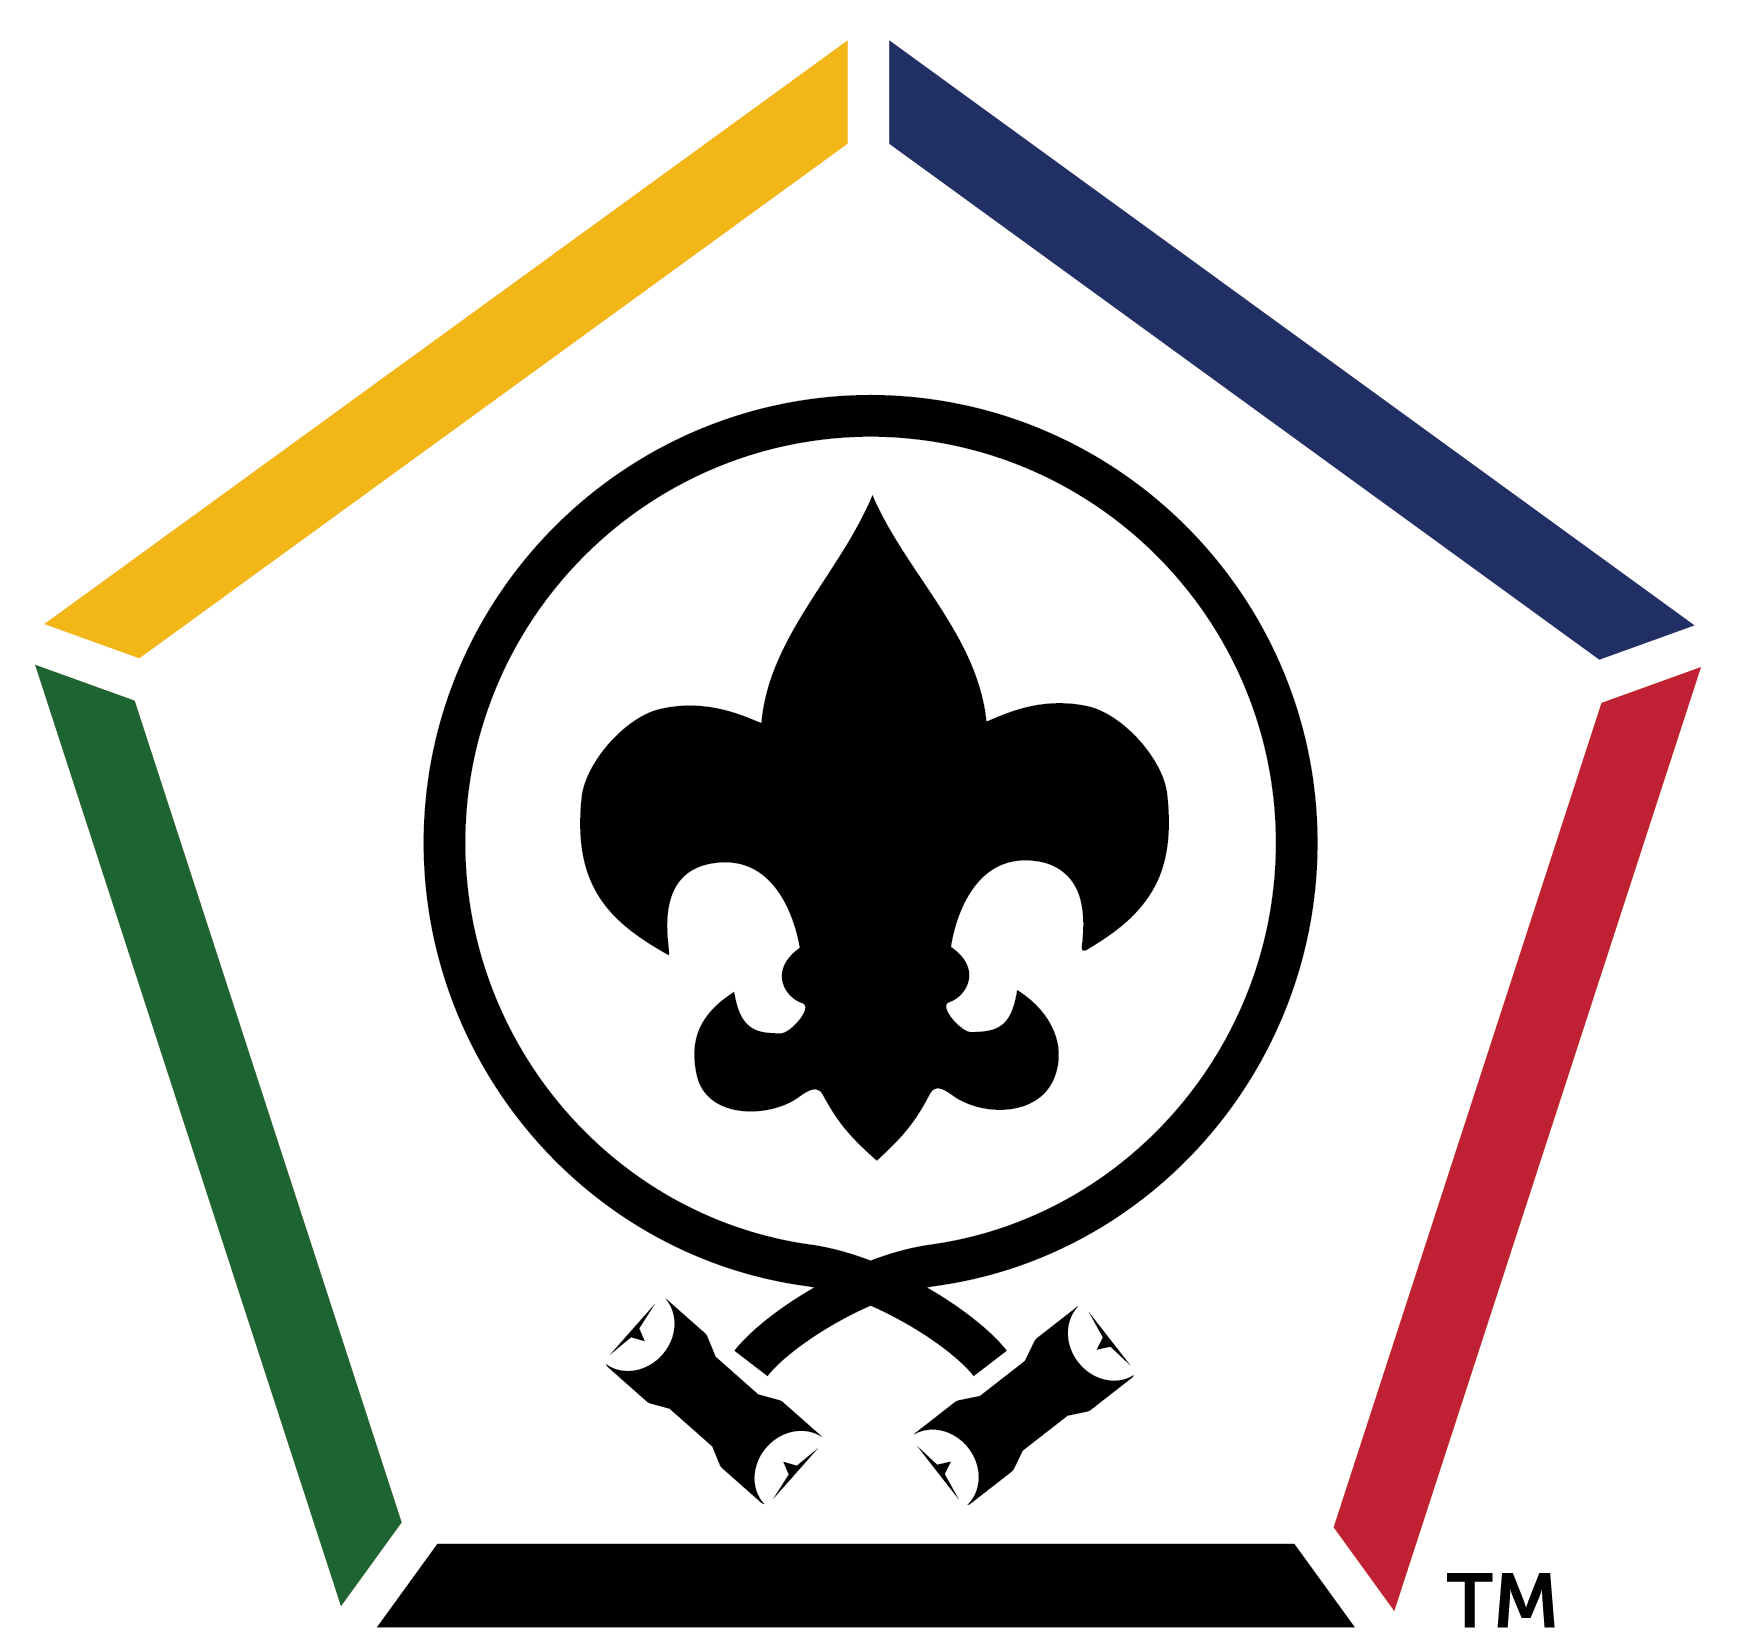 WoodBadge - Wood Badge is an advanced, national leadership course open only to Scouting volunteers and professionals.The Mississippi Valley Council is hosting a 2019 course. The Abraham Lincoln Council be hosting a course August 21-23, 2020 @ Camp Illinek and September 17-19, 2020 @ Camp Bunn.